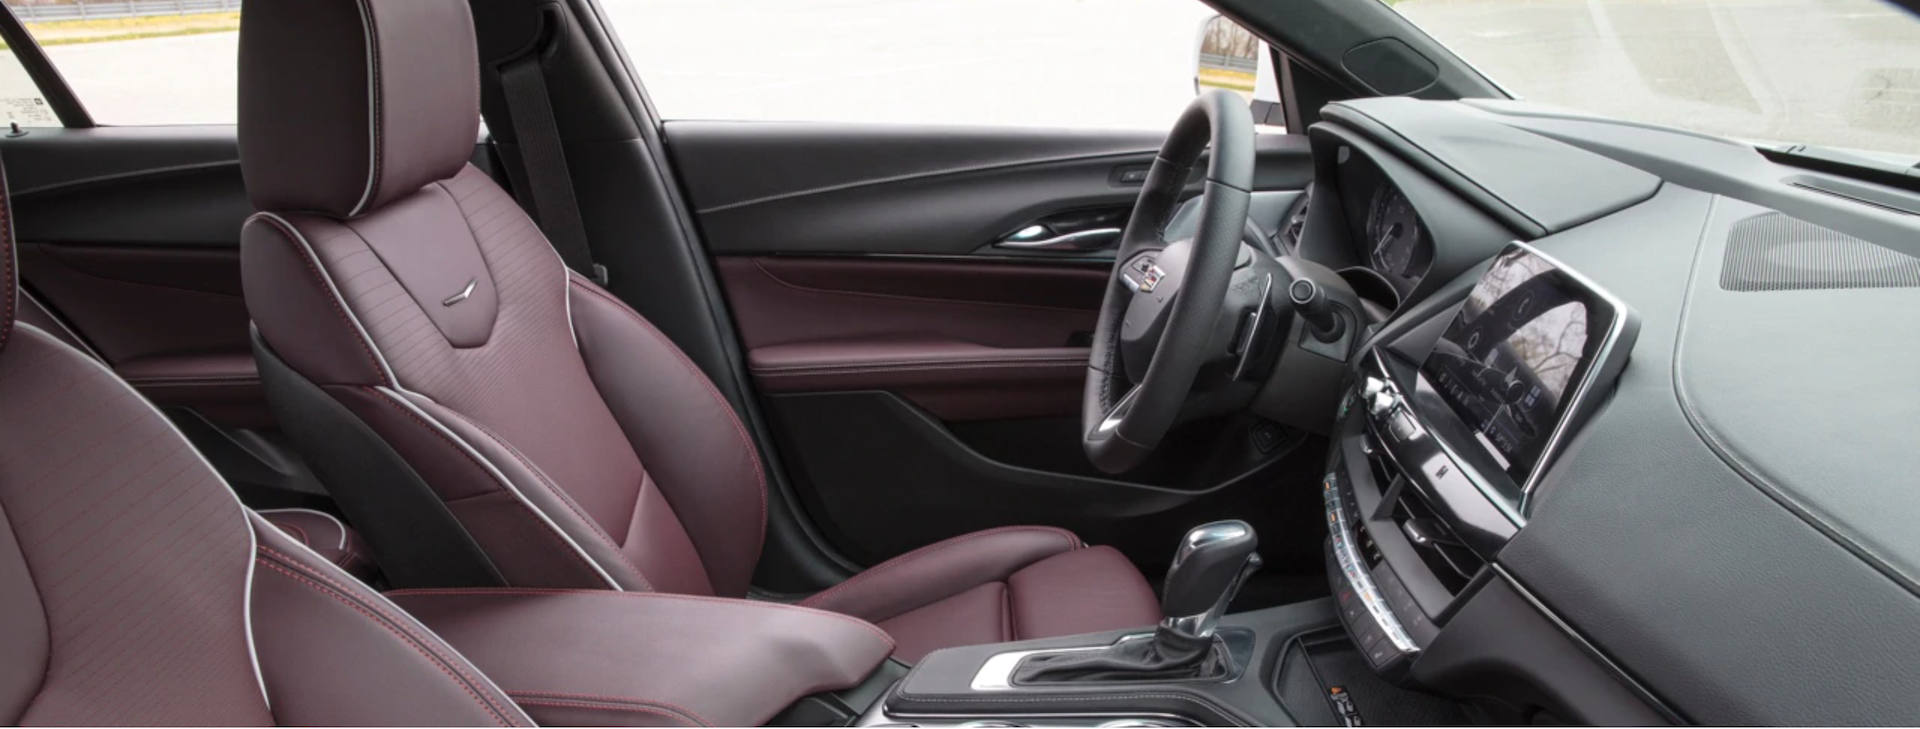 Picture of the interior of the 2020 Cadillac CT4